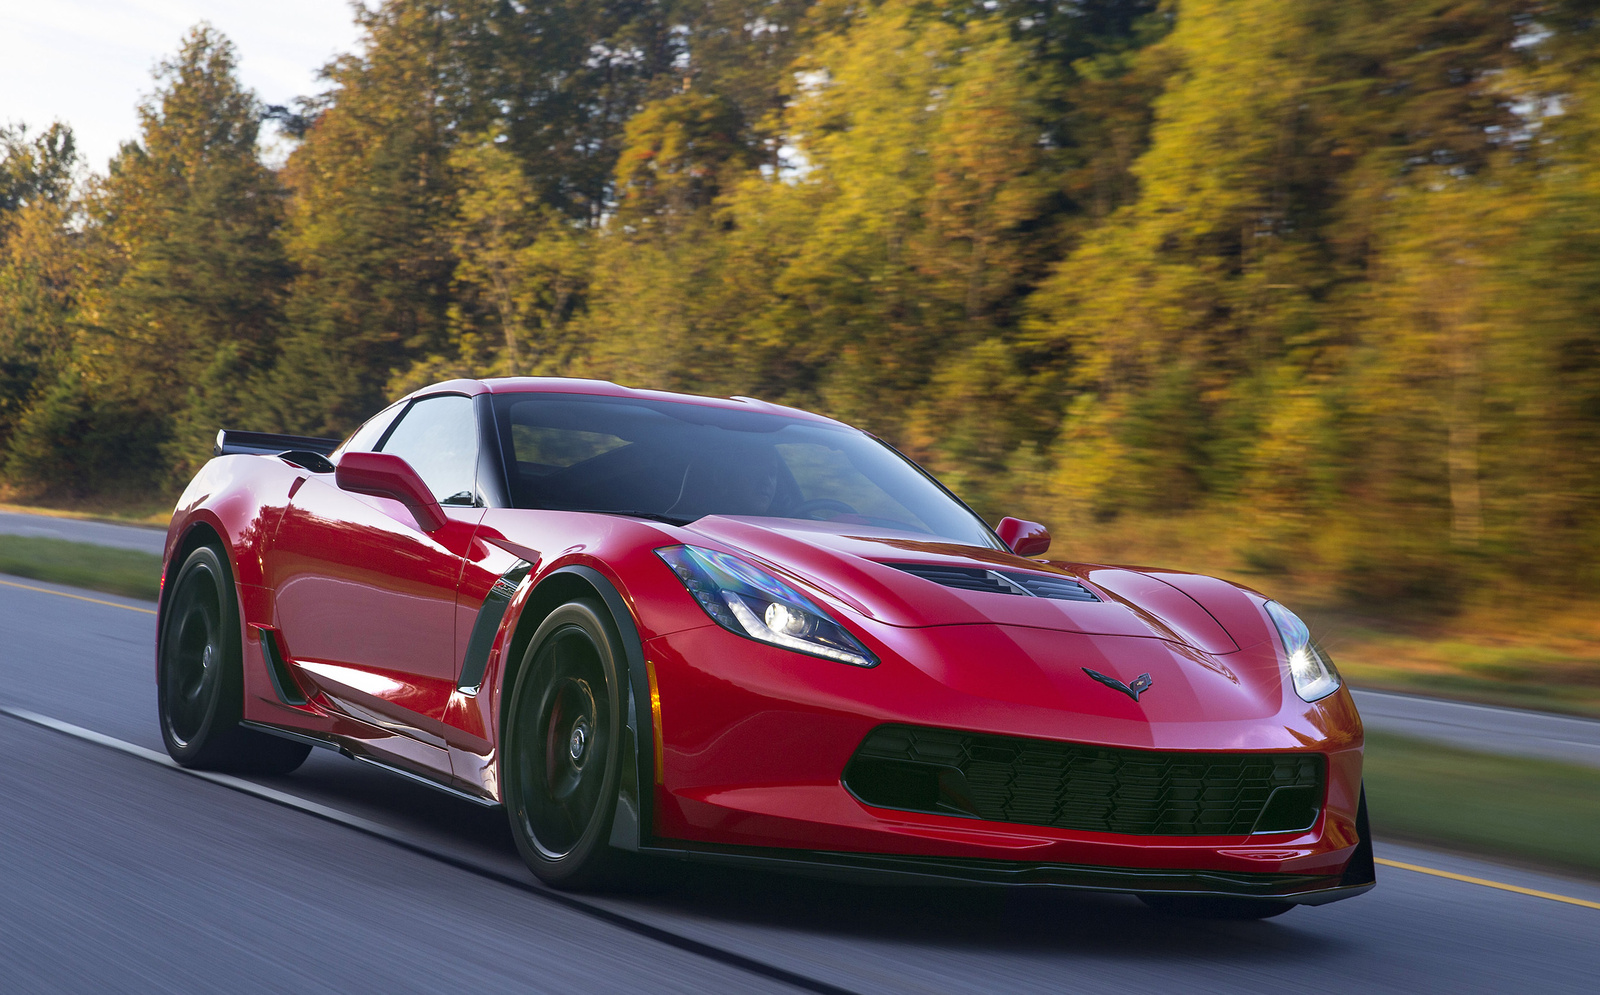 Home / Research / Chevrolet / Corvette / 2015